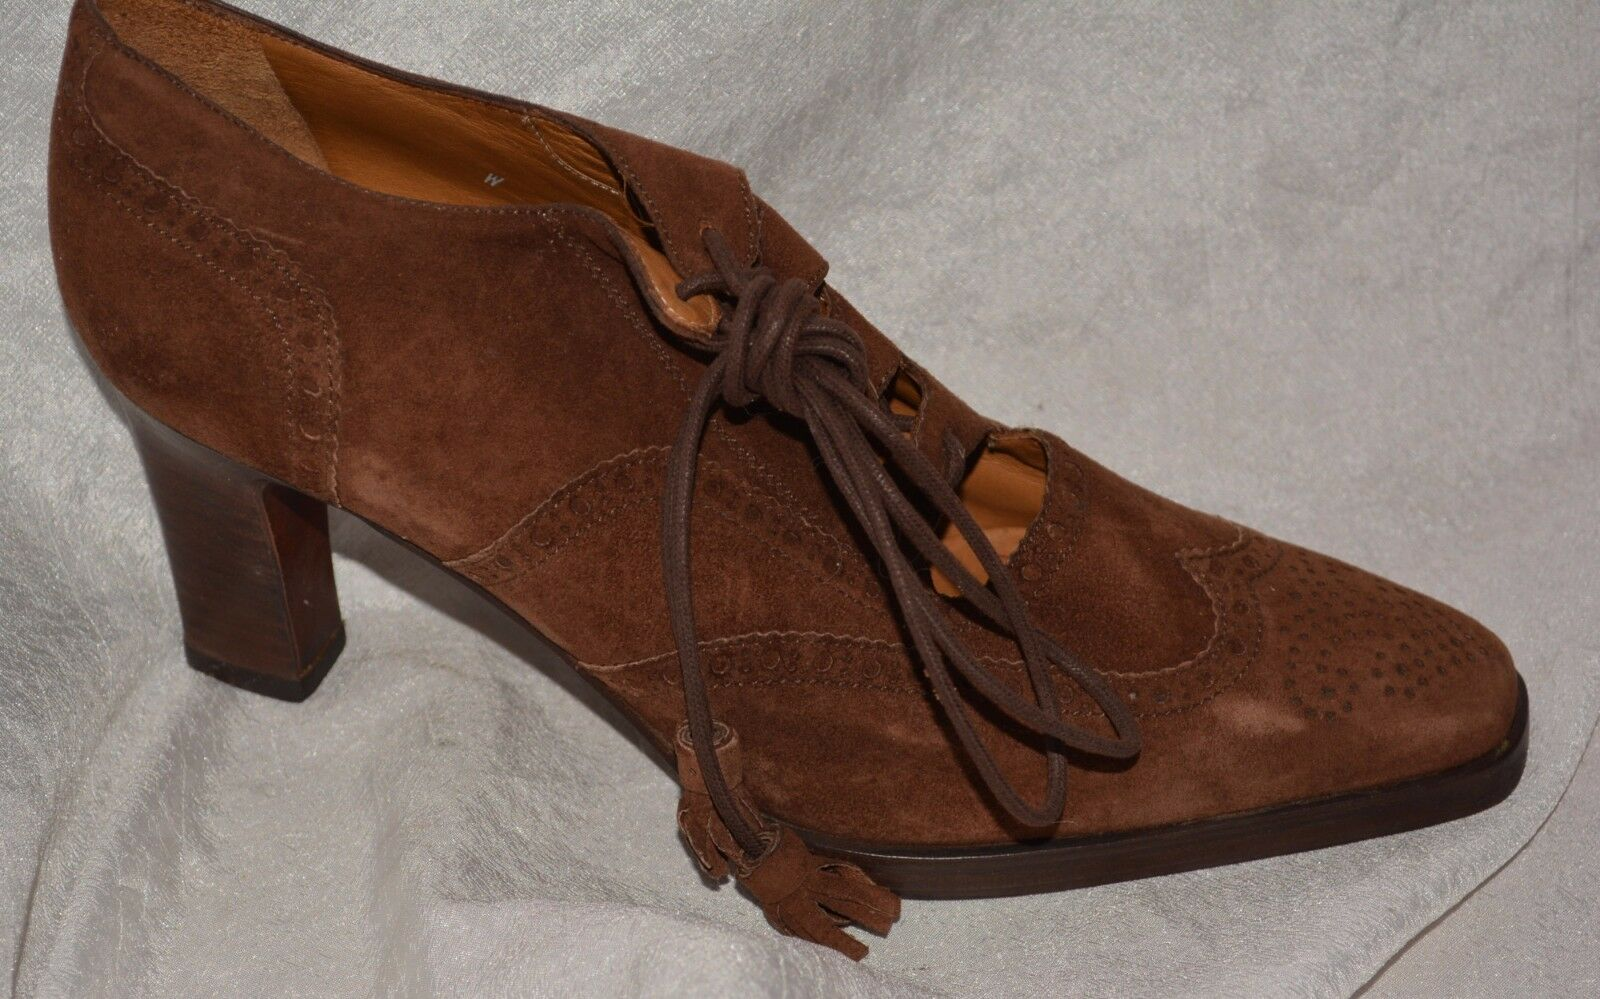 RALPH LAUREN Brown Lace Up Tie Wing Tip Pumps Size 9 Narrow AA NEW SHOES ladies